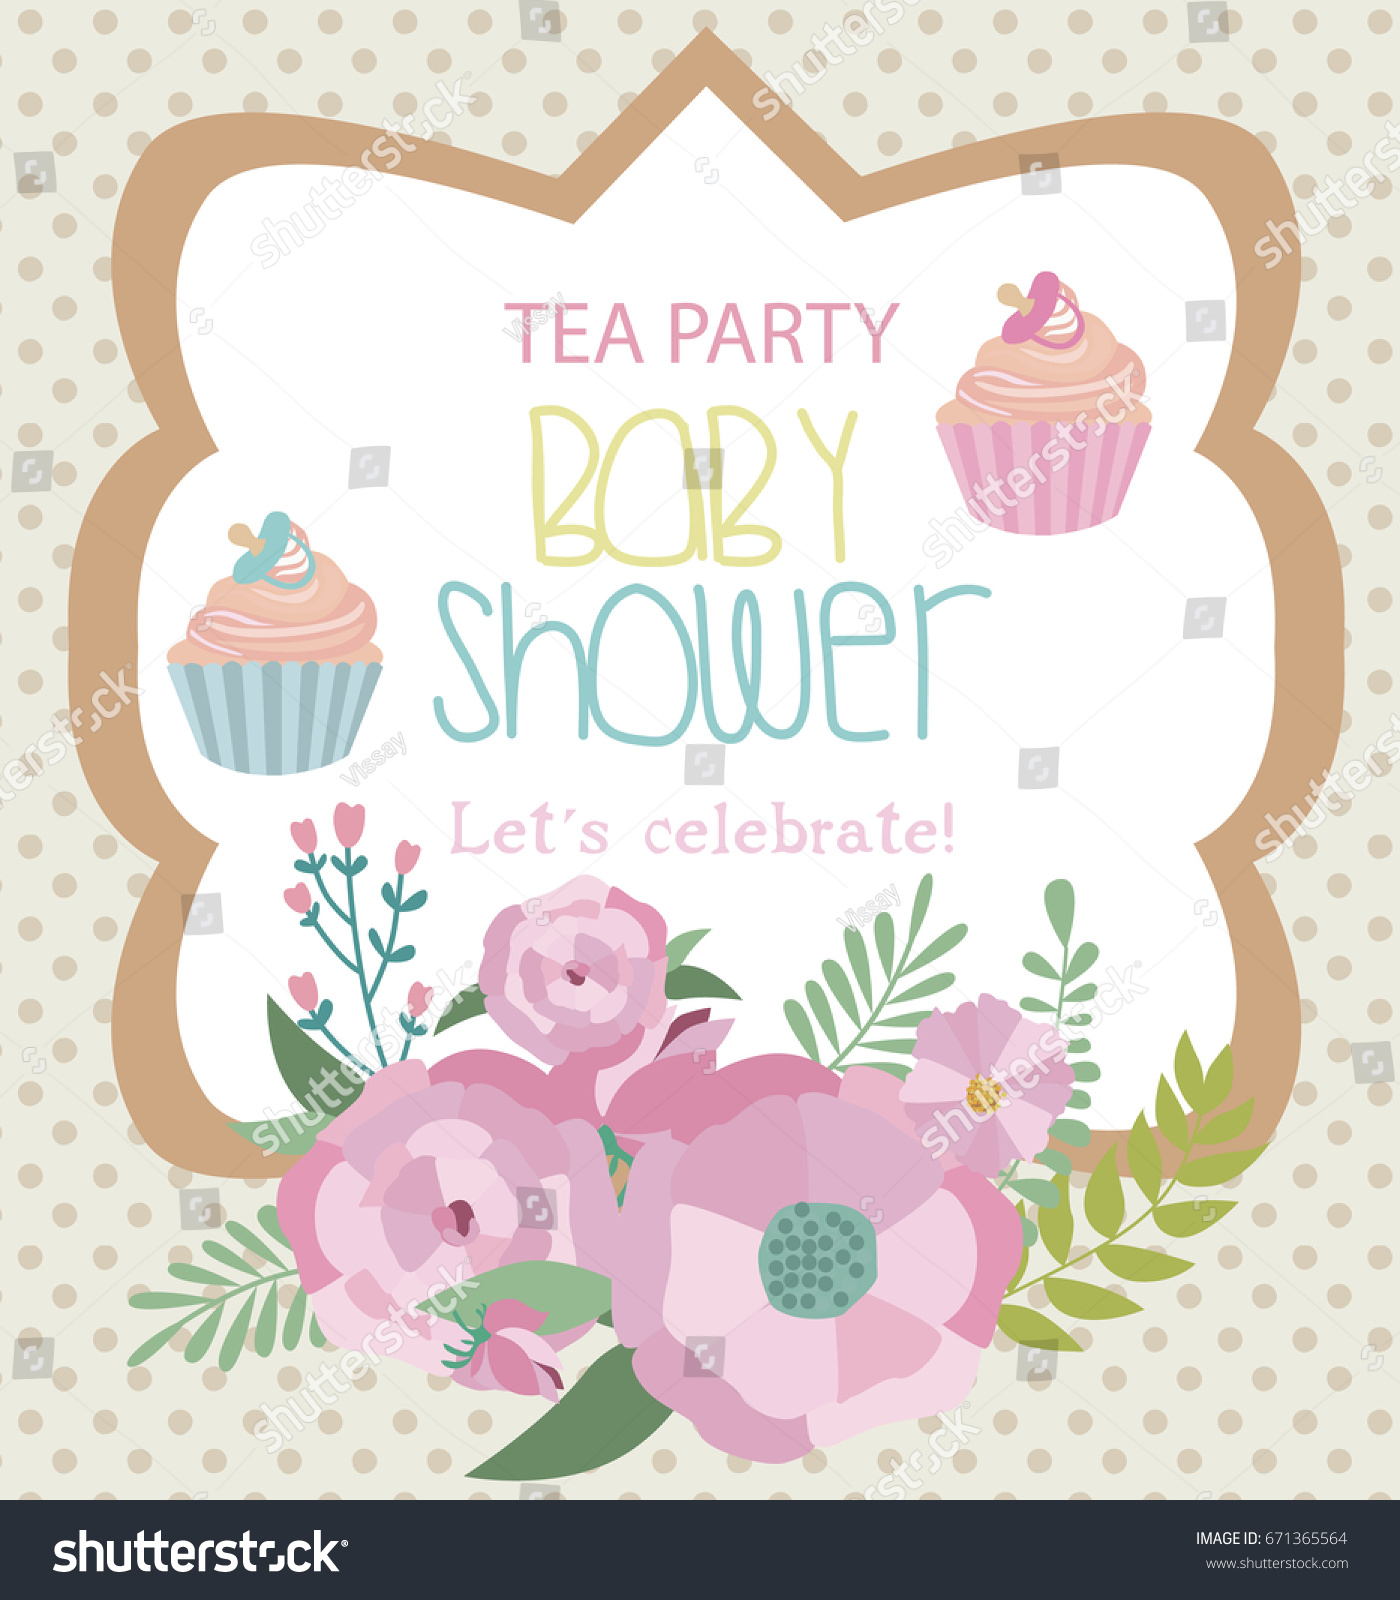 Invitation Card Baby Shower Tea Party Stock Vector 671365564 ...